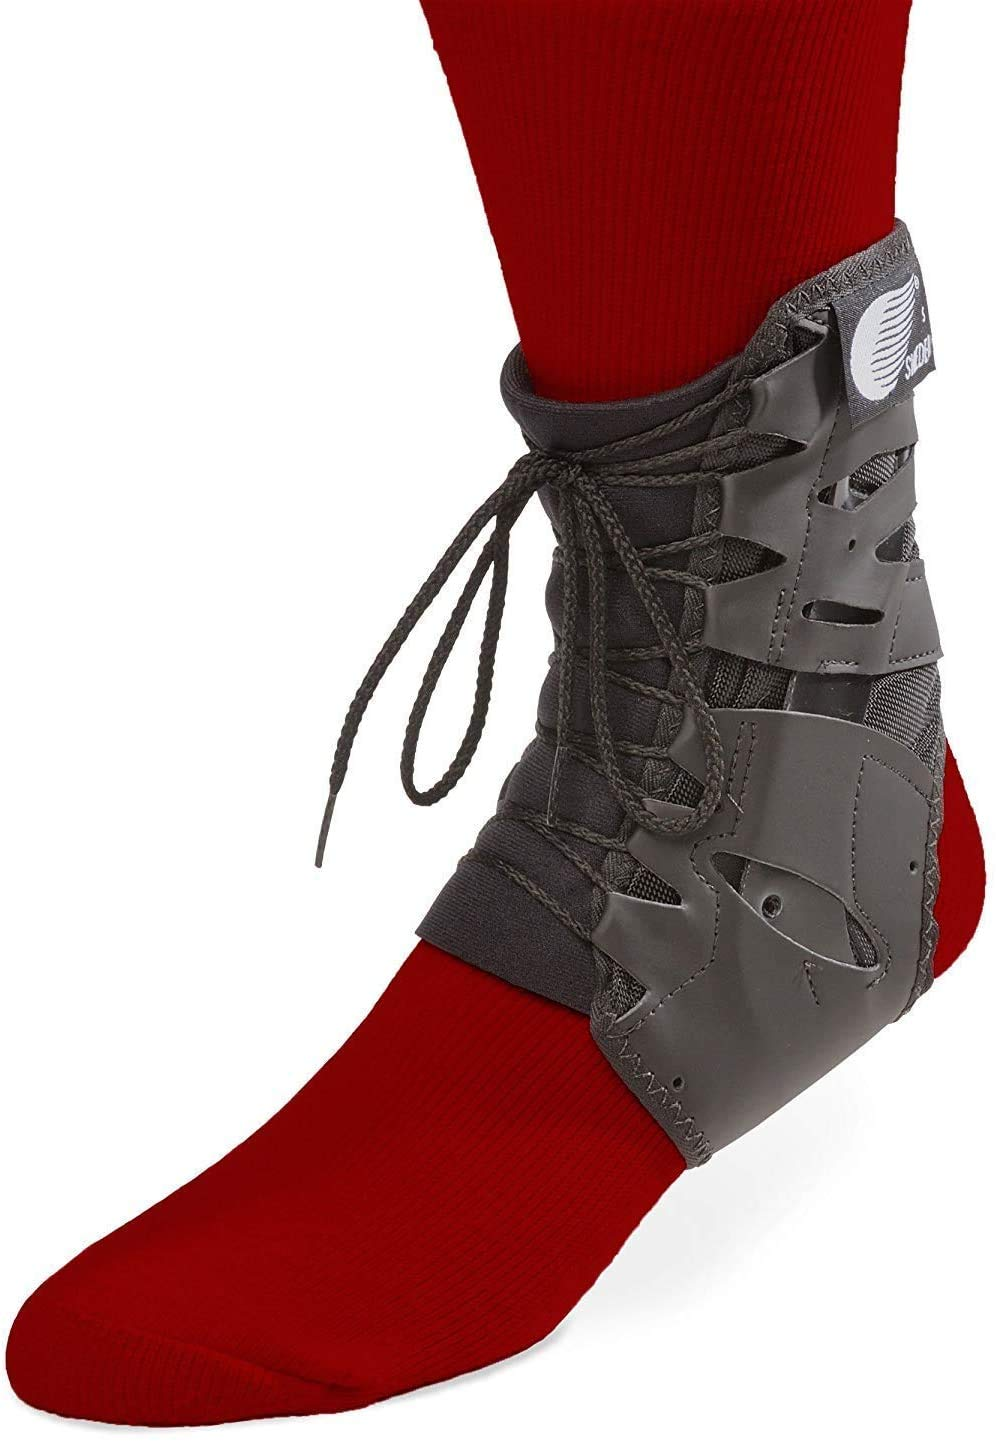 Swede-O Tarsal Super intense SALE Lok Small Ankle Support Cheap super special price